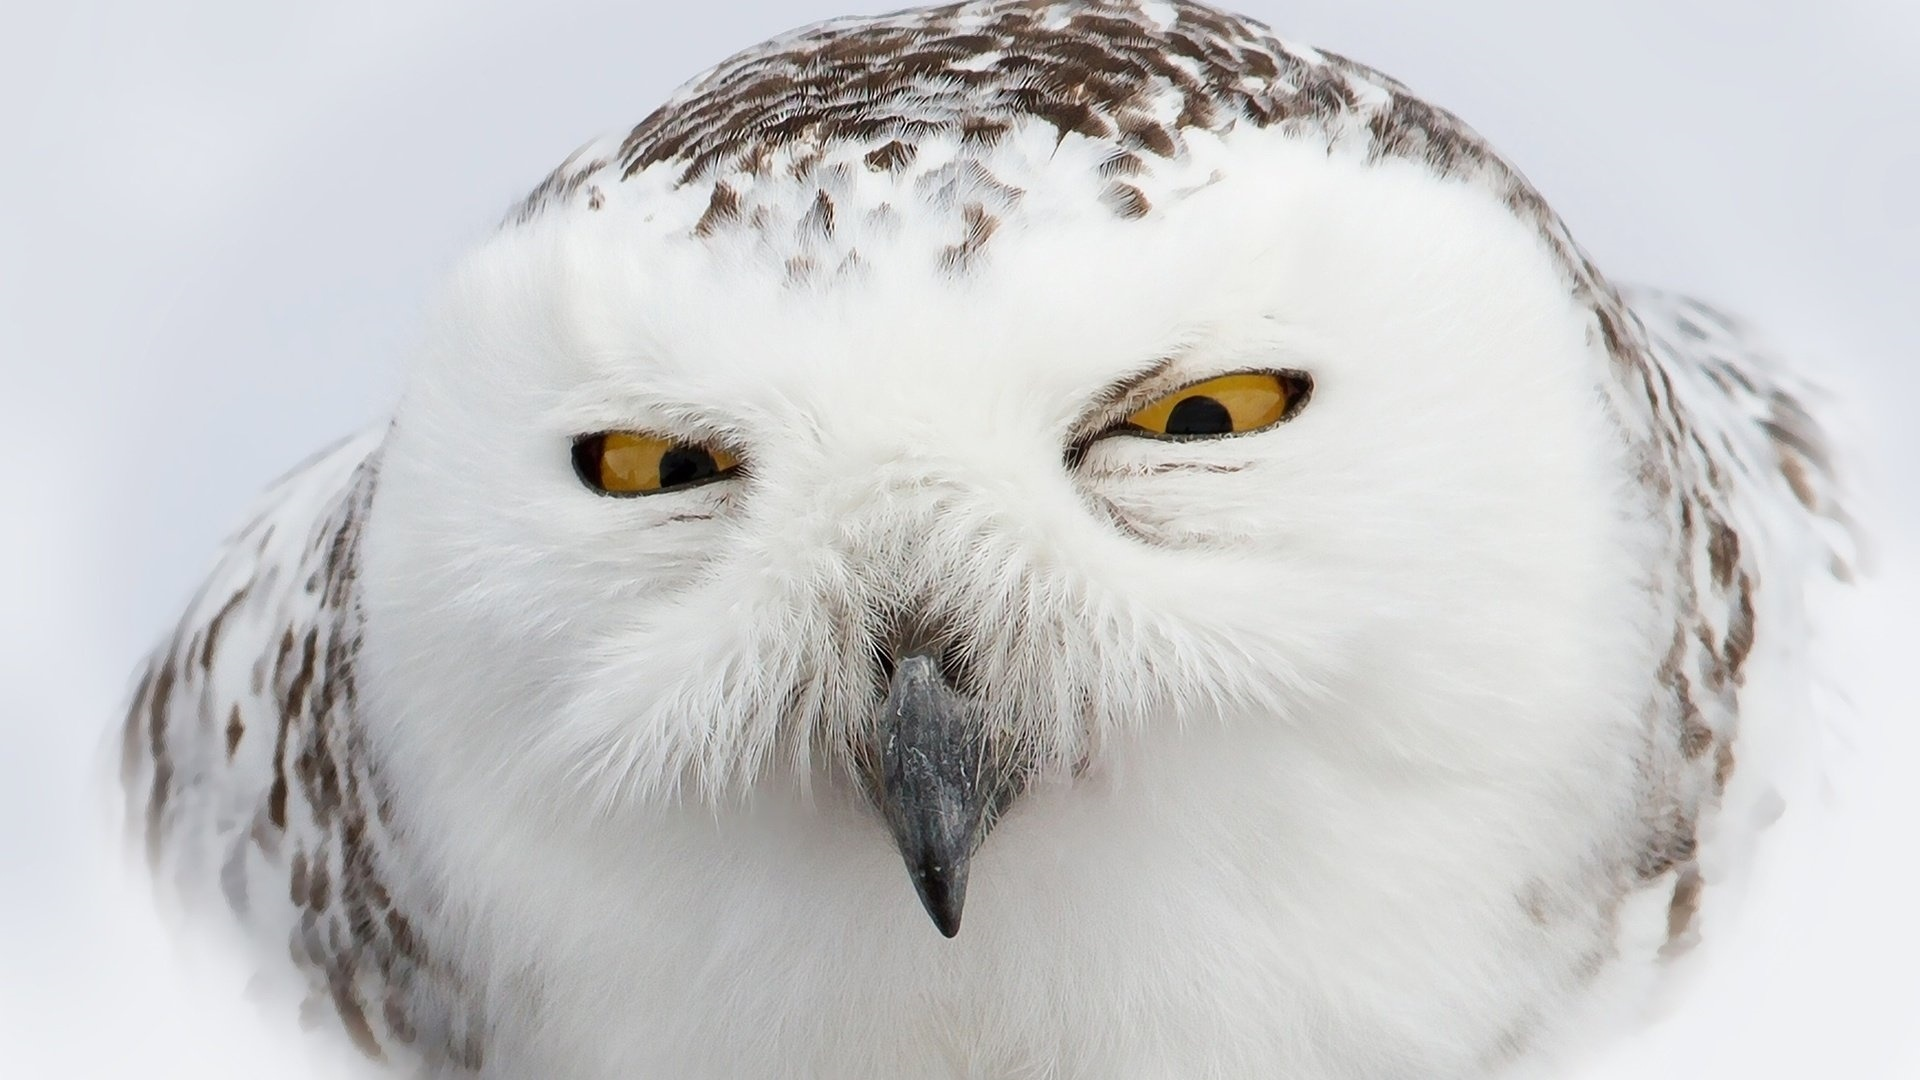 Polar Owl Wallpaper theme